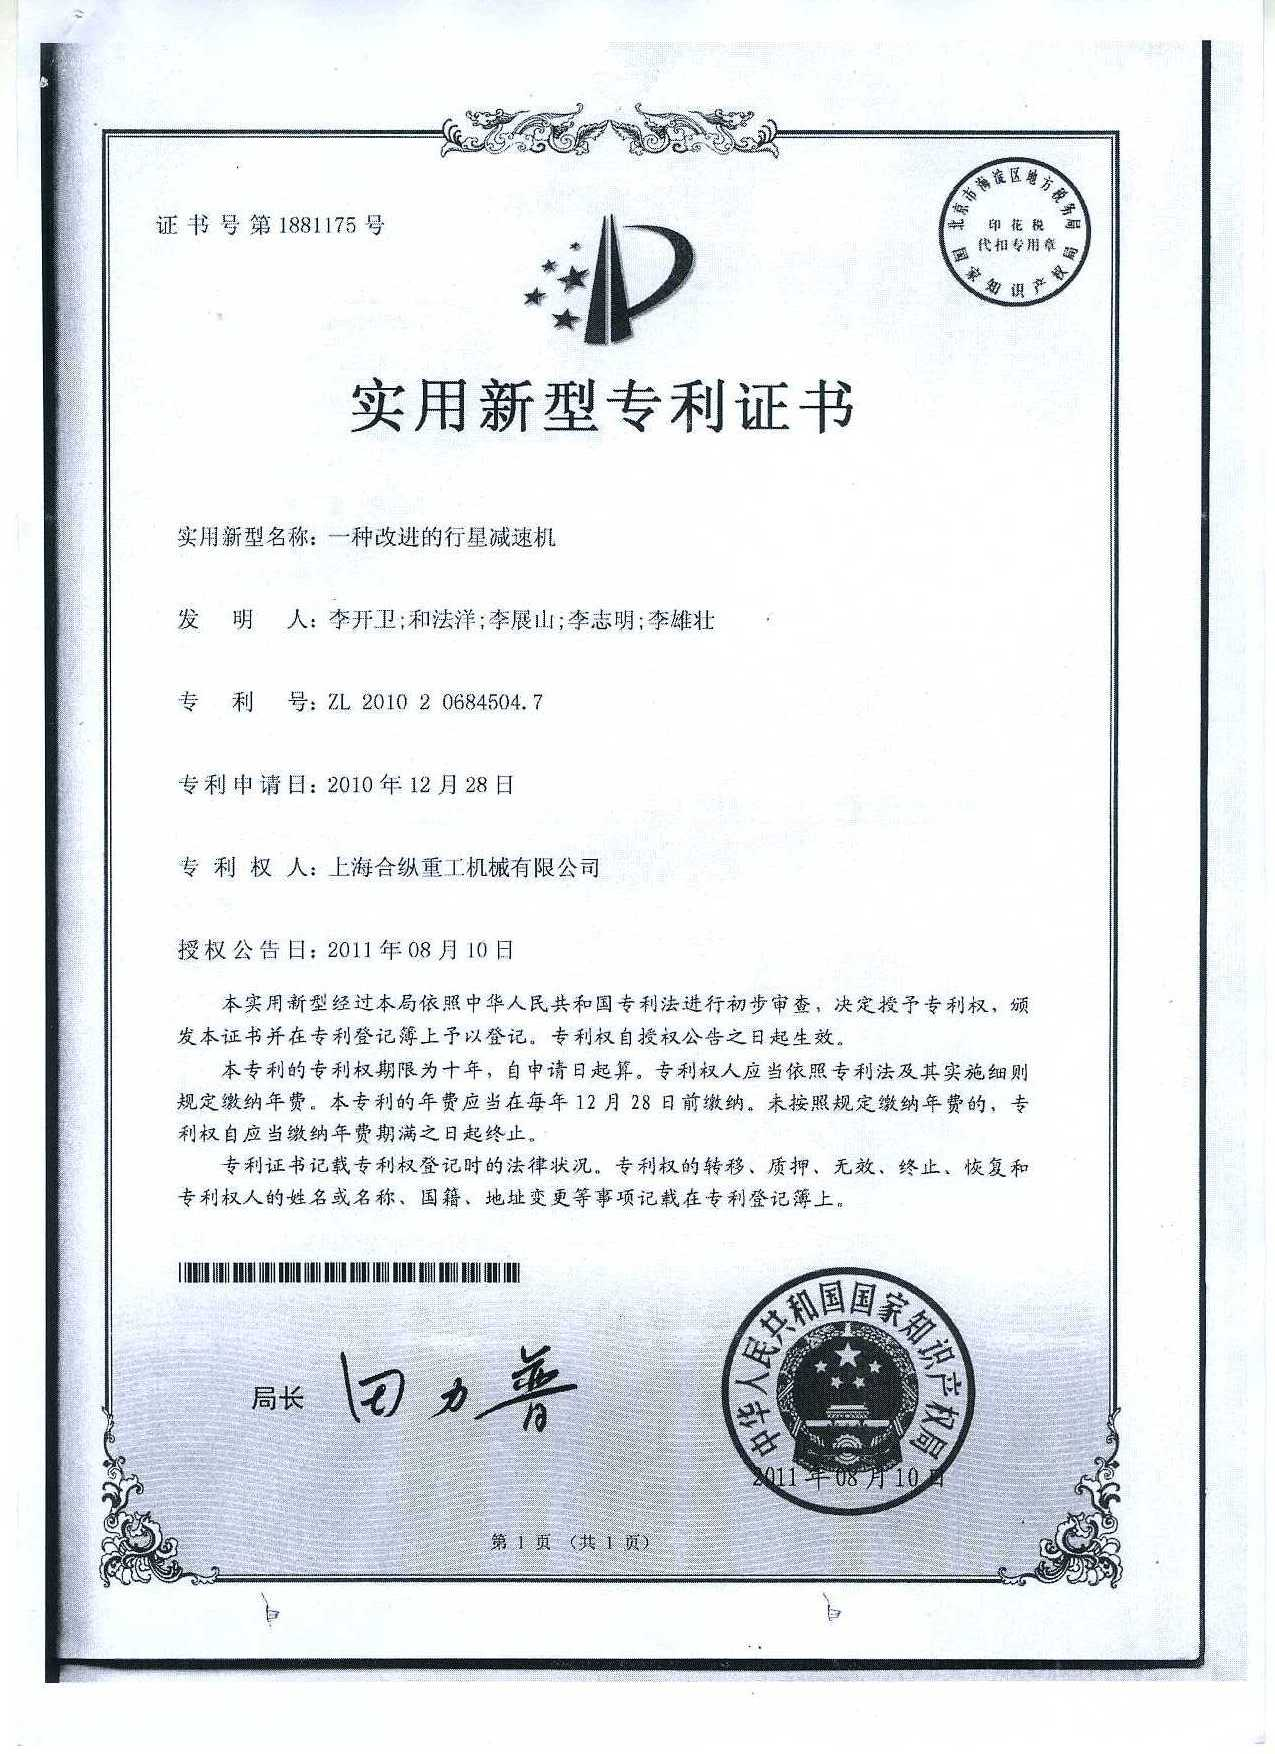 Patent Certificate of Planetary Gearbox